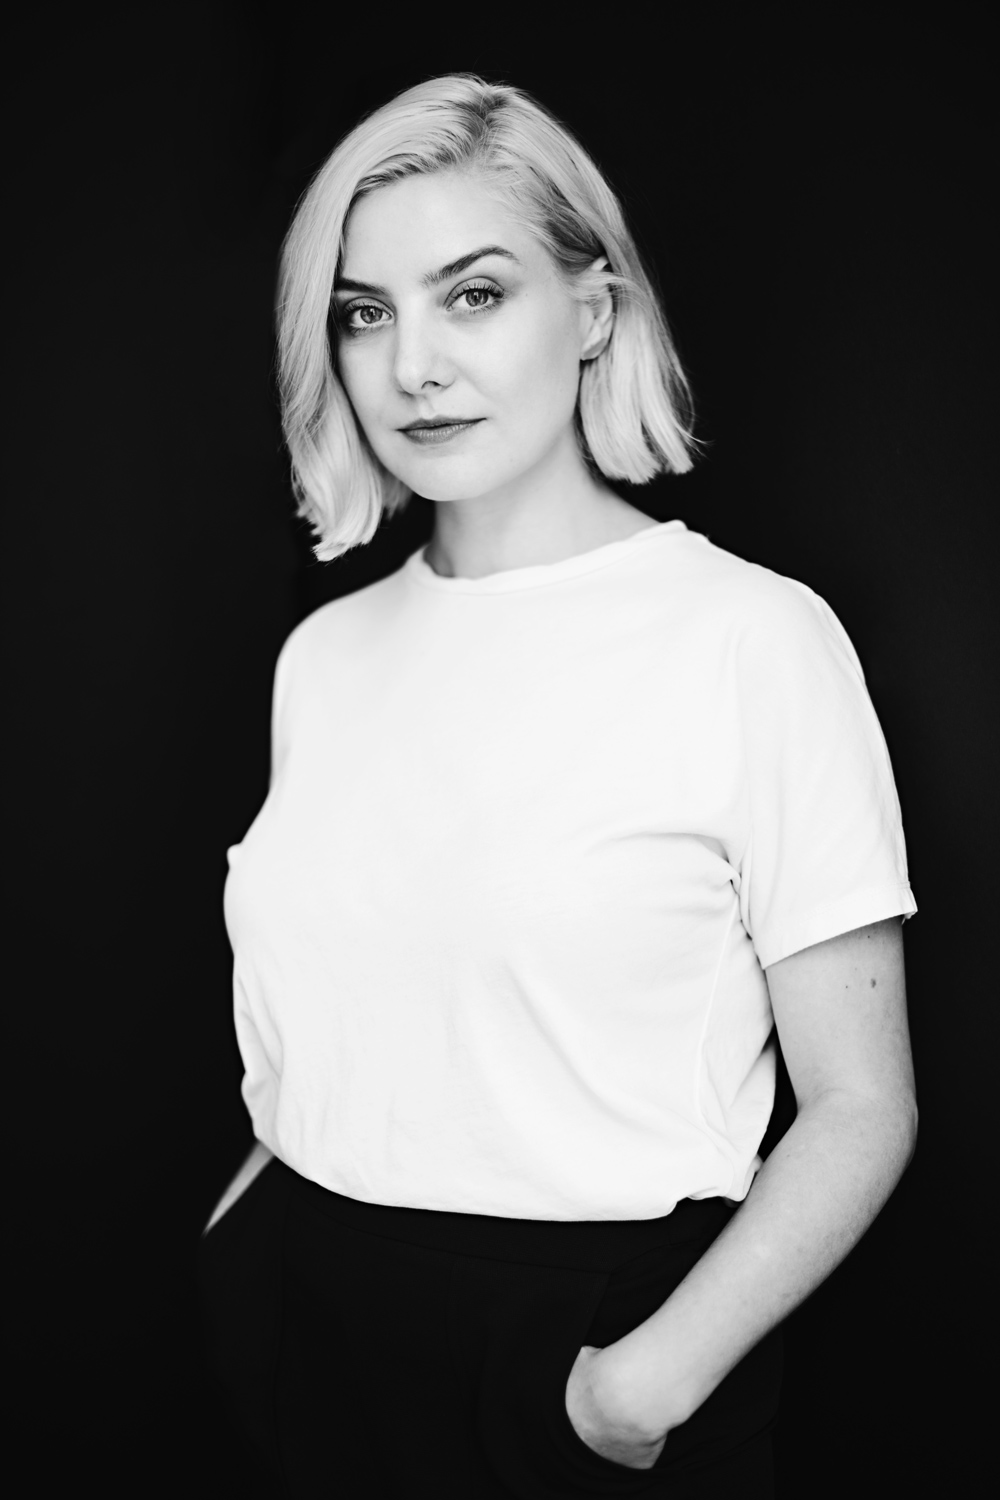 Marissa Neave - Leads digital marketing for our brands. She has degrees in art criticism and art history and previously managed marketing and social media for BITE Beauty.